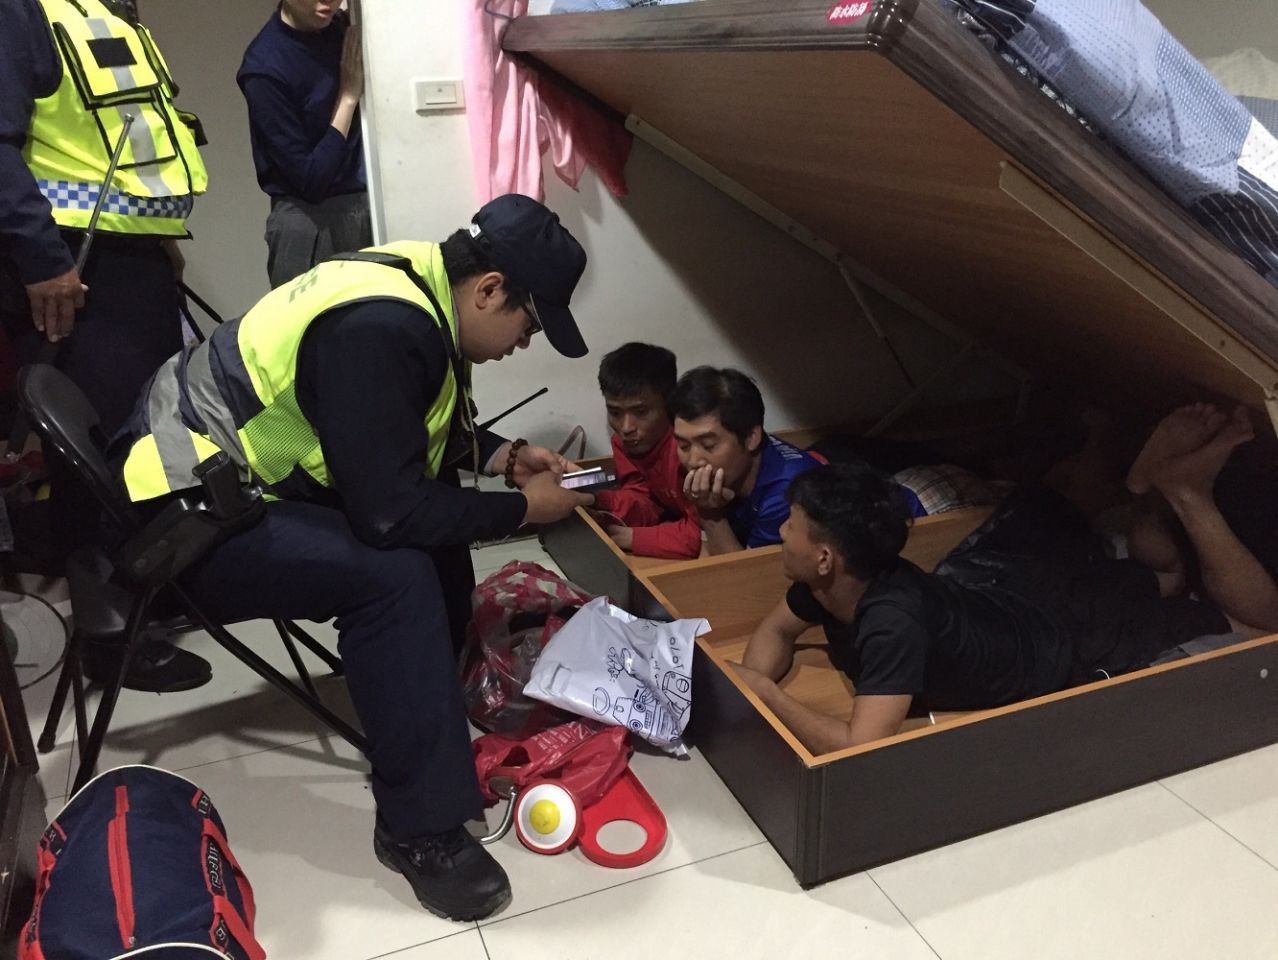 Taiwan arrested for drug use, Vietnamese youth took home to arrest three more friends hiding under the bed - Photo 2